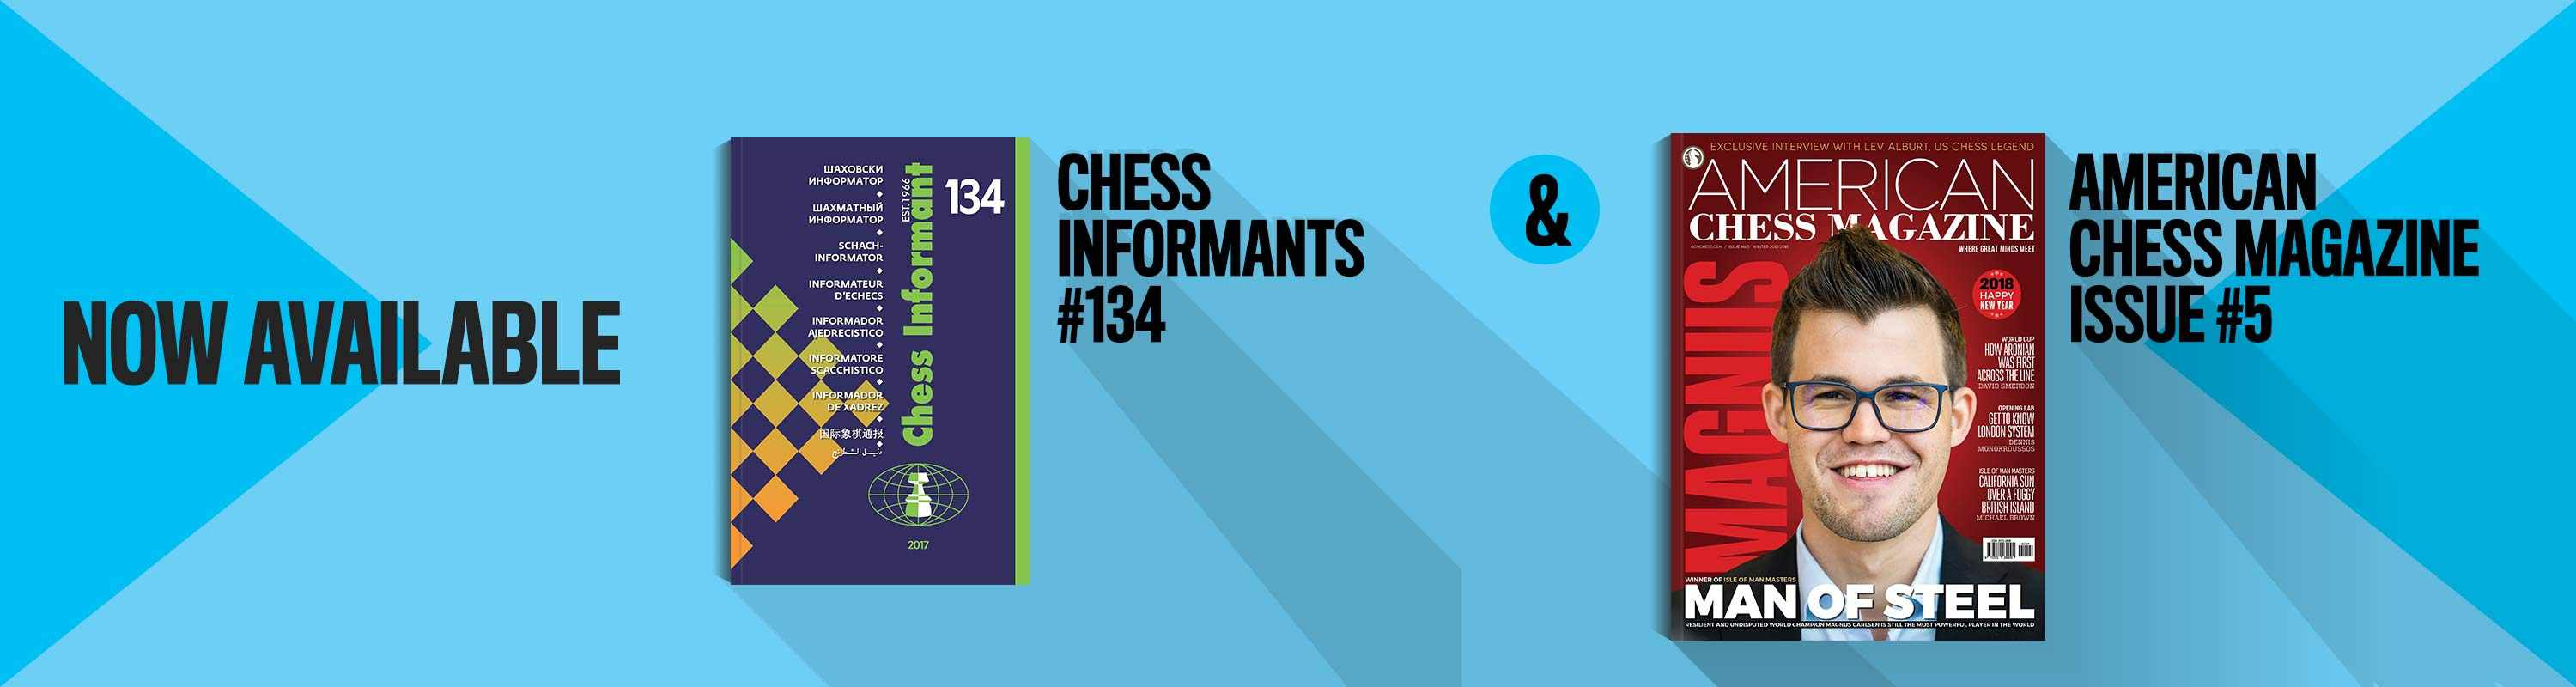 Now Available: Chess Informants #134 and American Chess Magazine #5